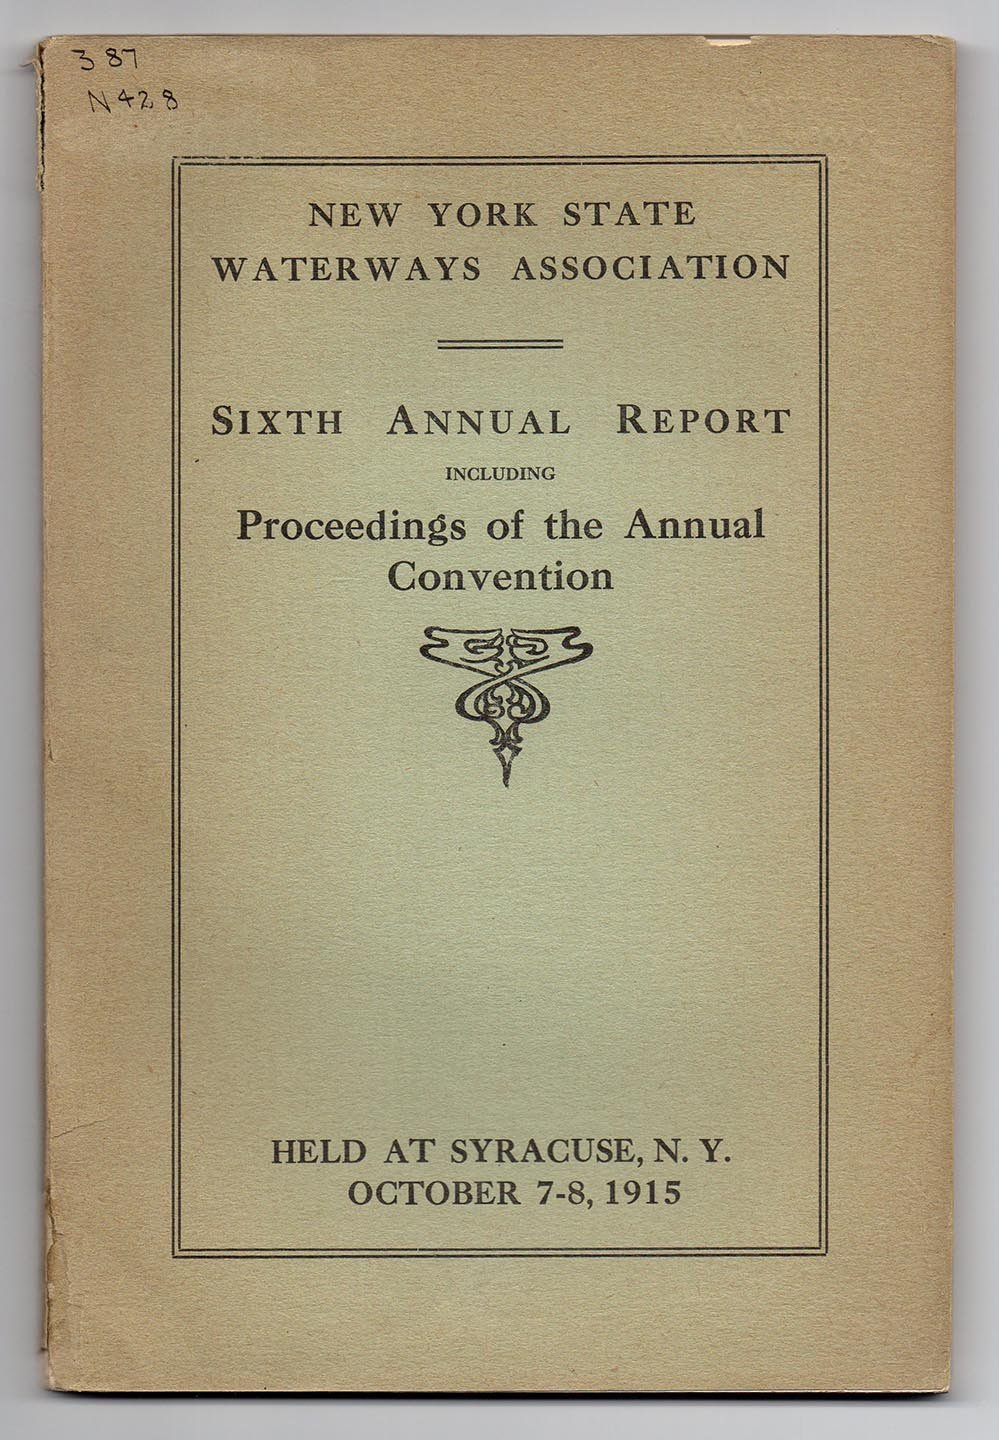 New York State Waterways Association Sixth Annual Report Including Proceedings of the Annual Convention Held at Syracuse, N.Y. October 7-8, 1915